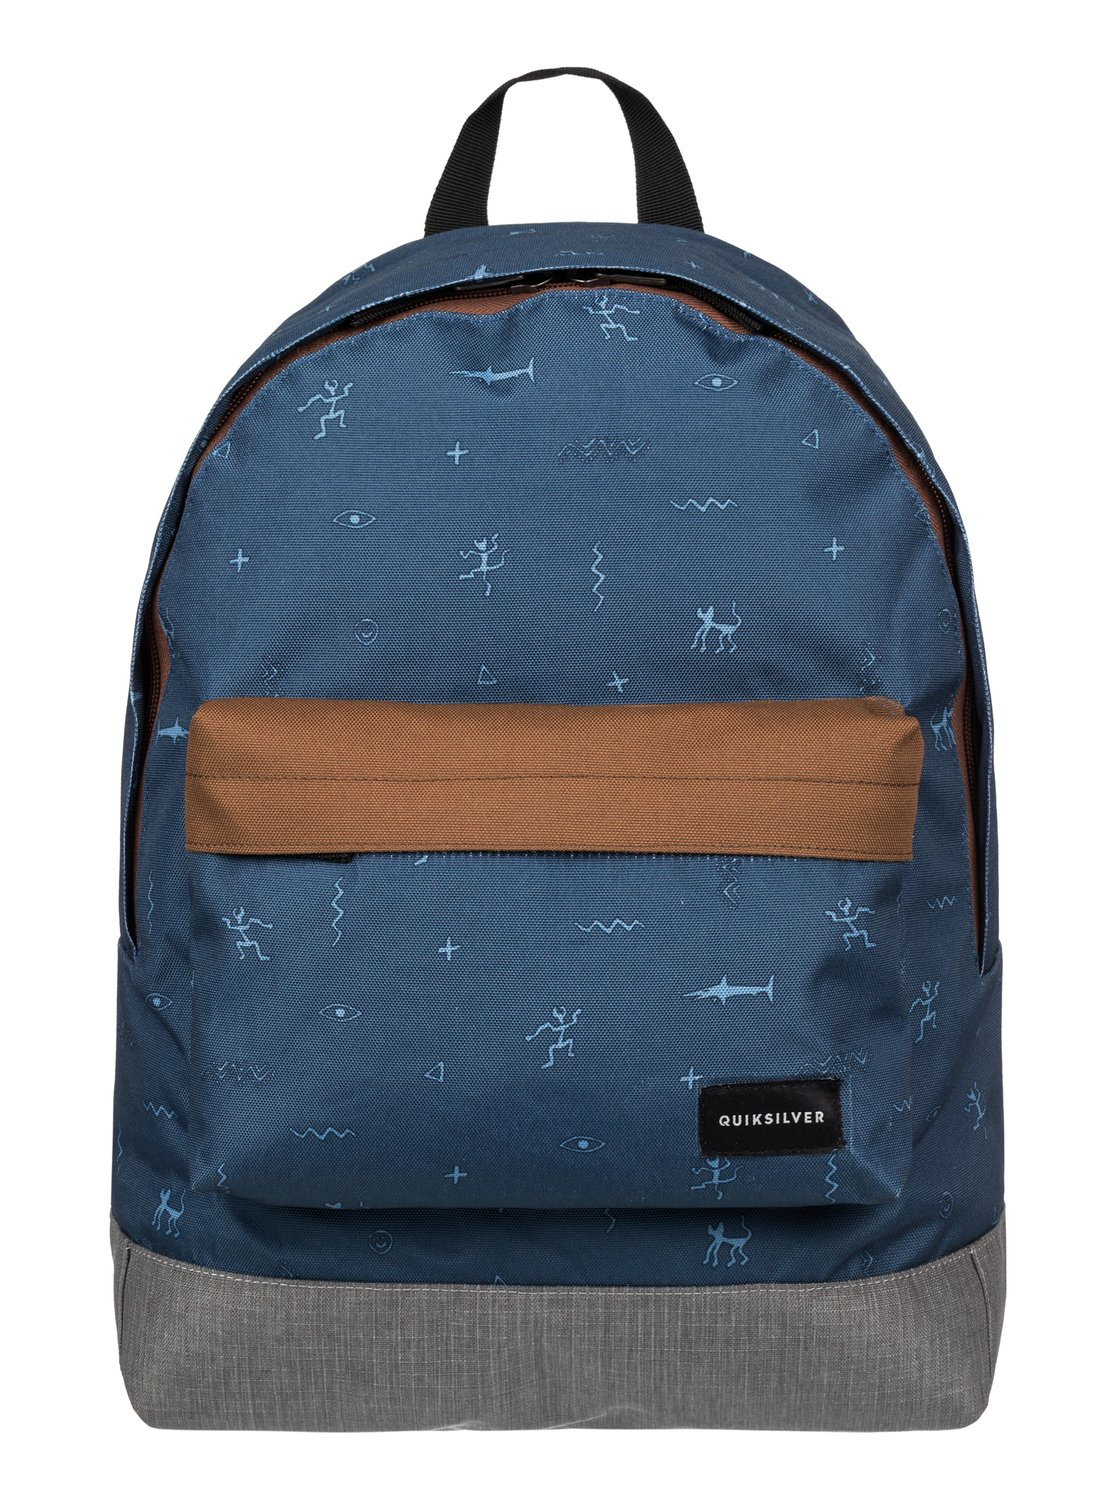 Quiksilver-Everyday-Poster-Sac-a-dos-pour-homme-EQYBP03277